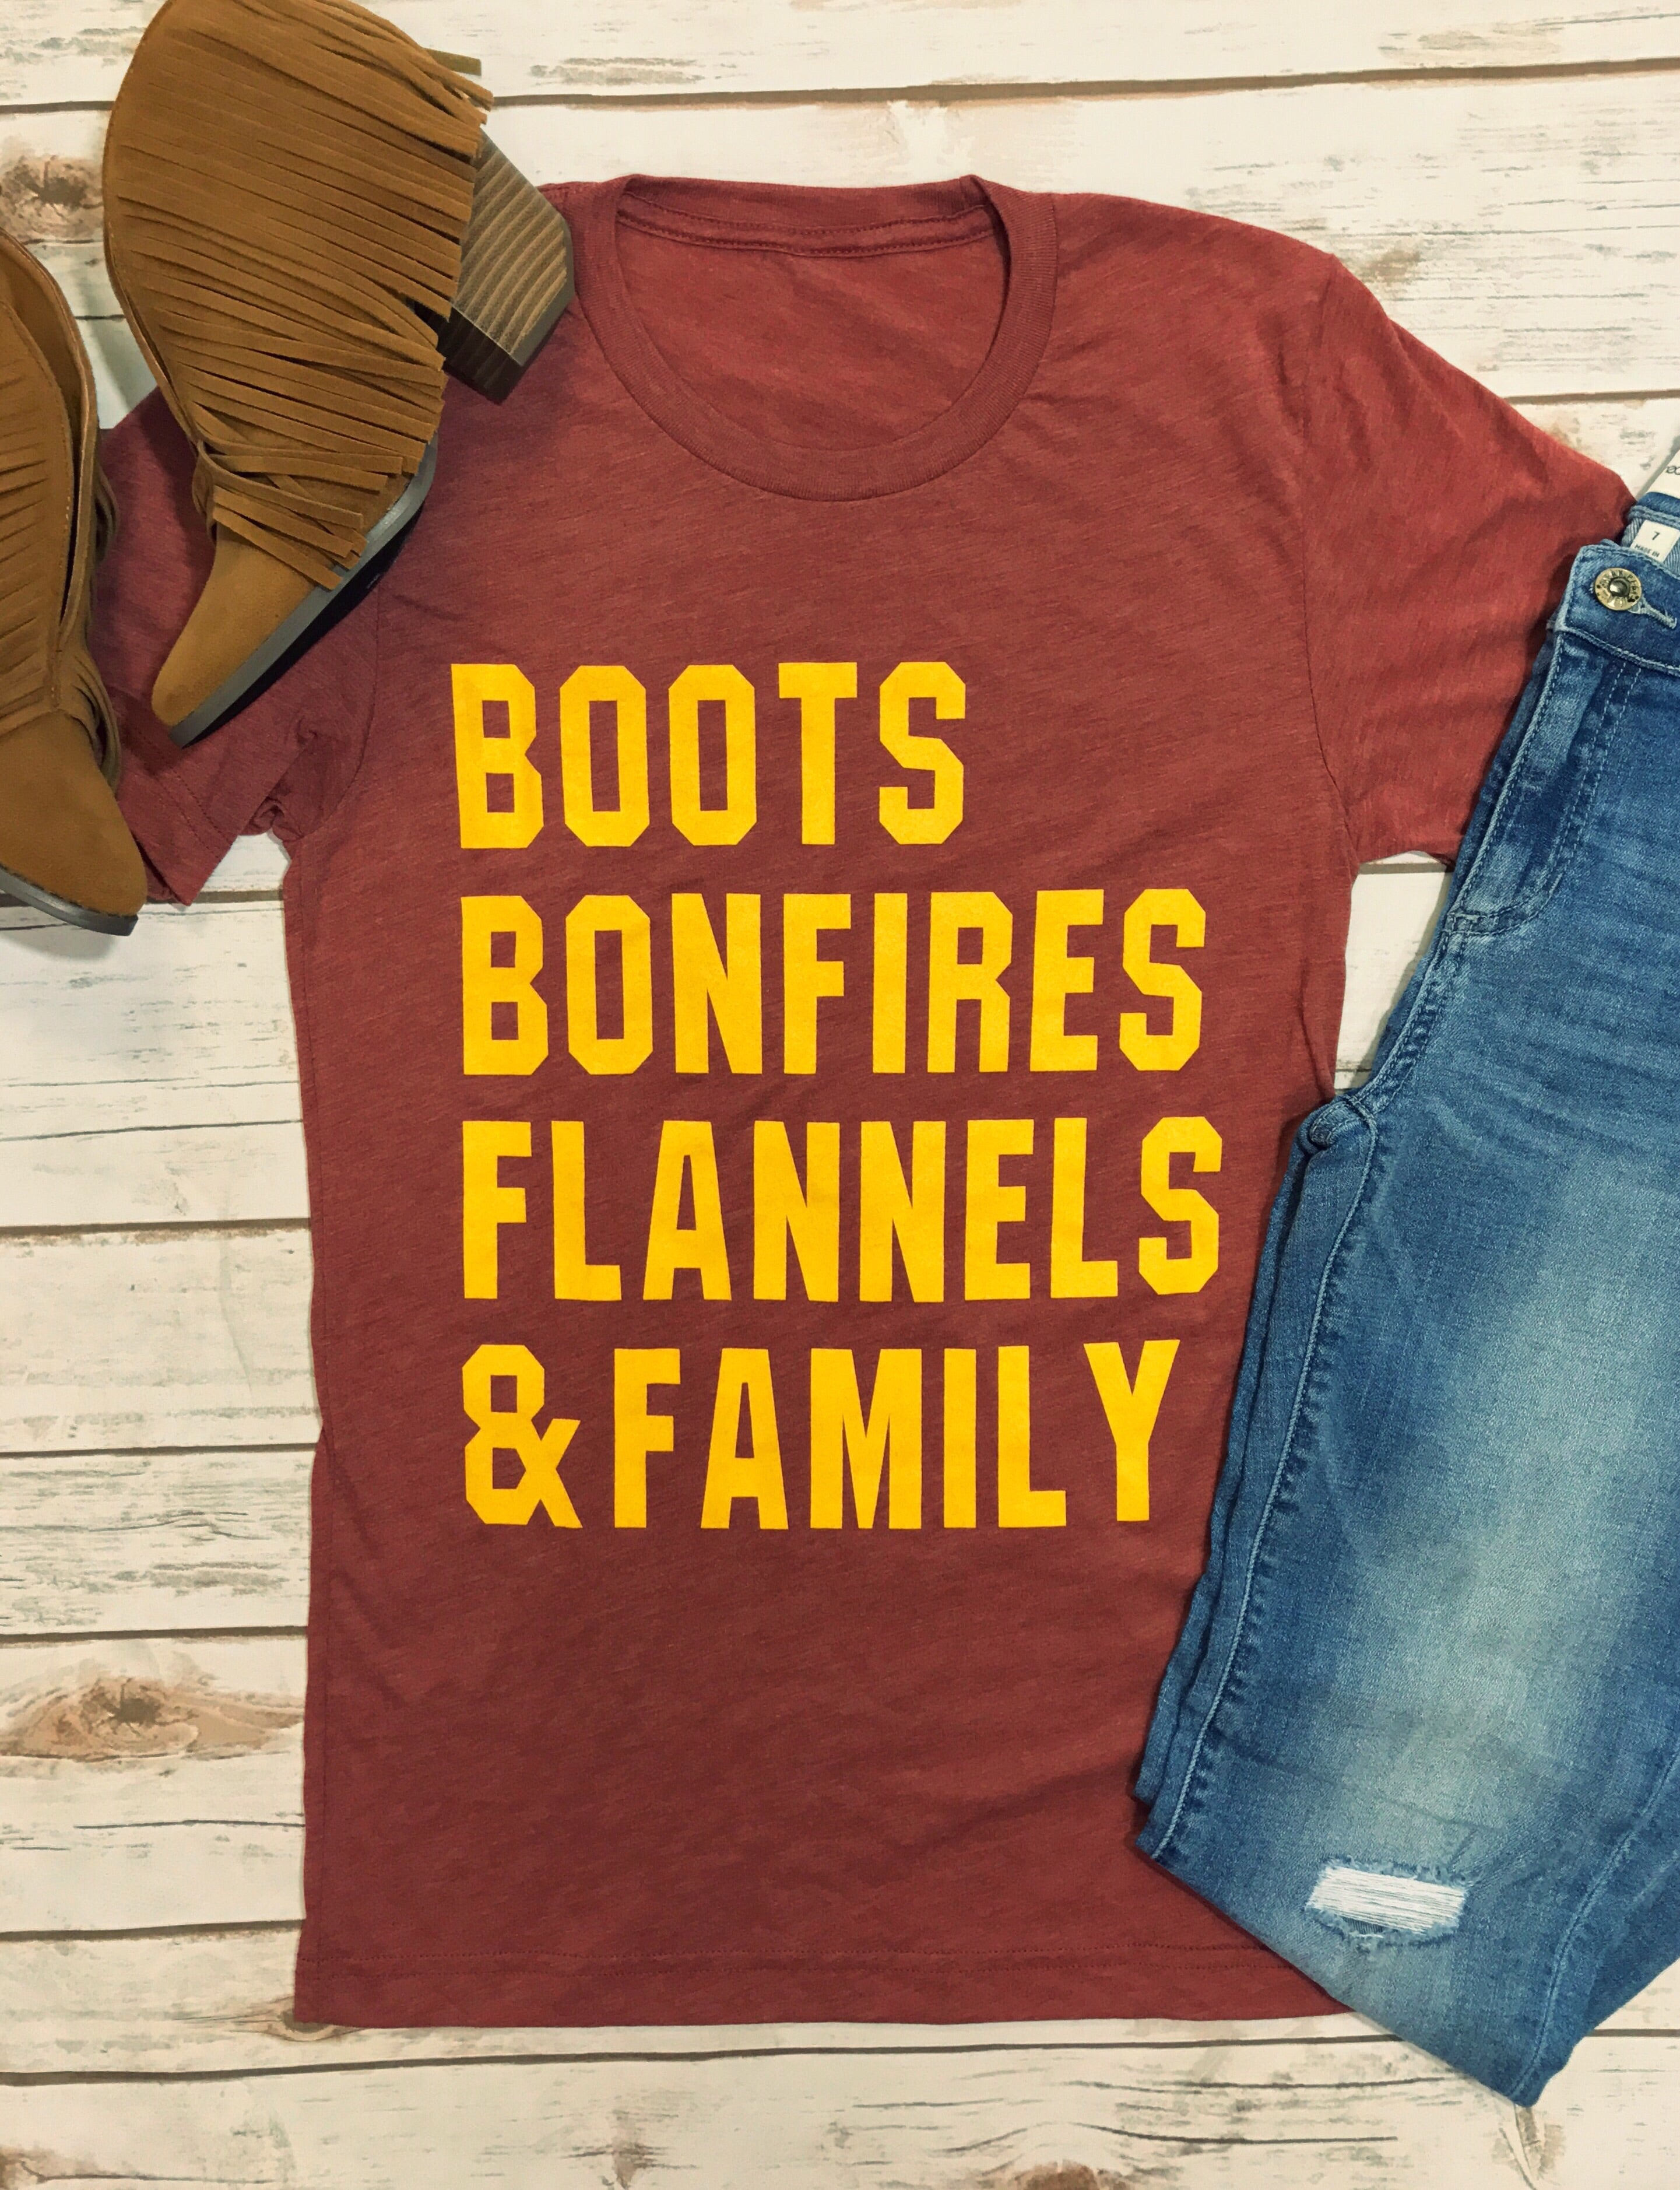 Boots, Bonfires, Flannels & Family Tee